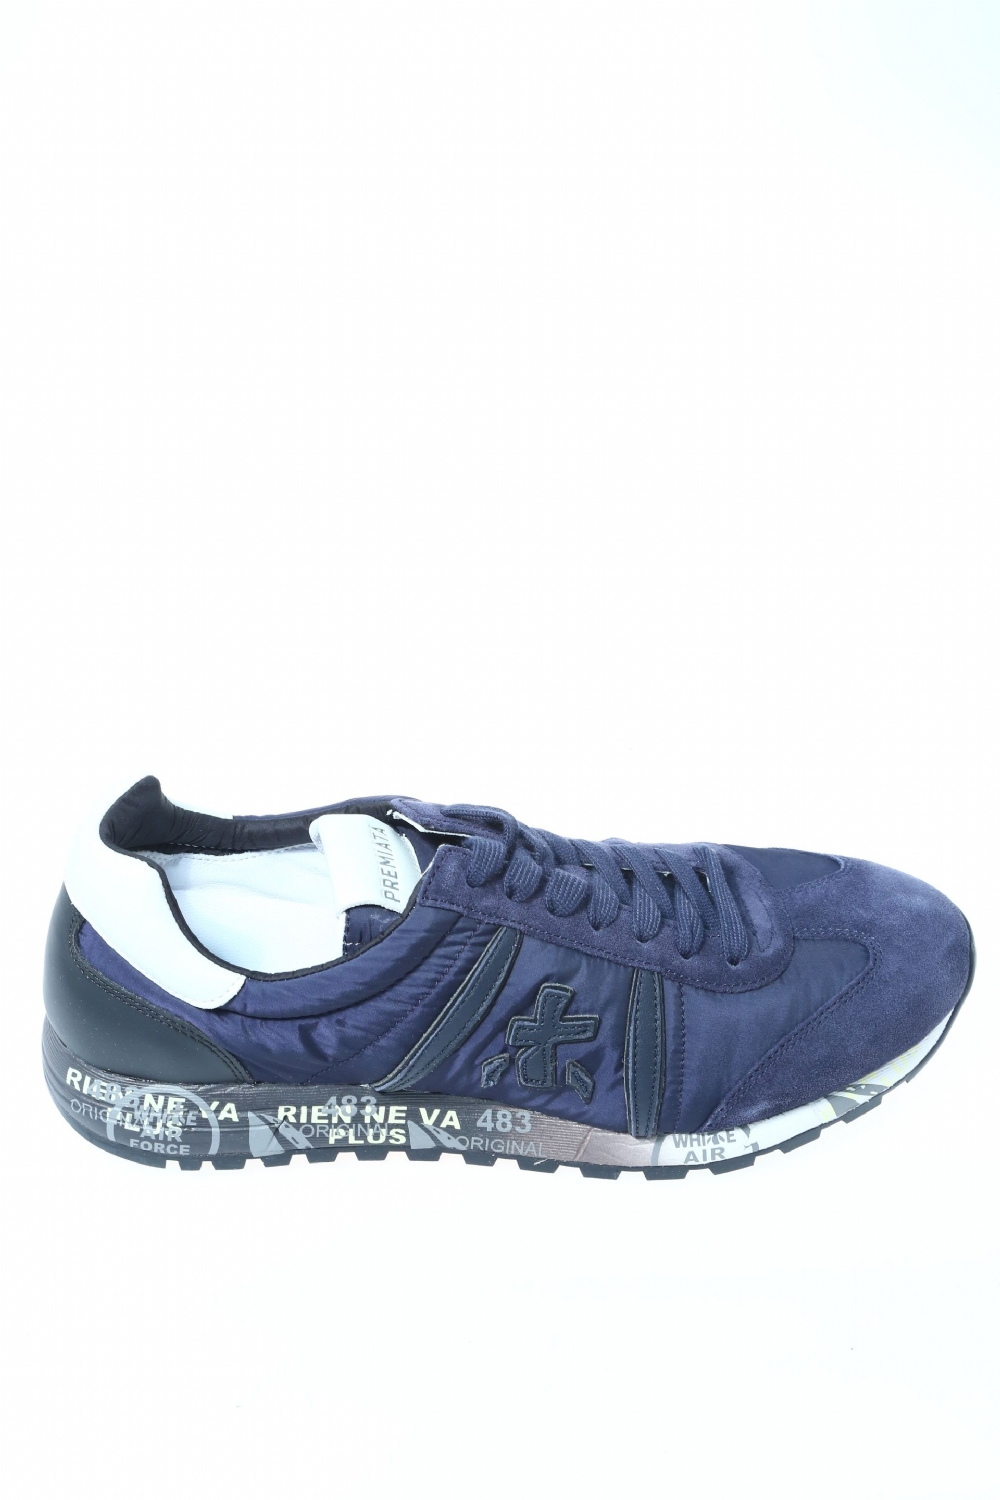 Sales On Men S New Balance Shoes In Mi